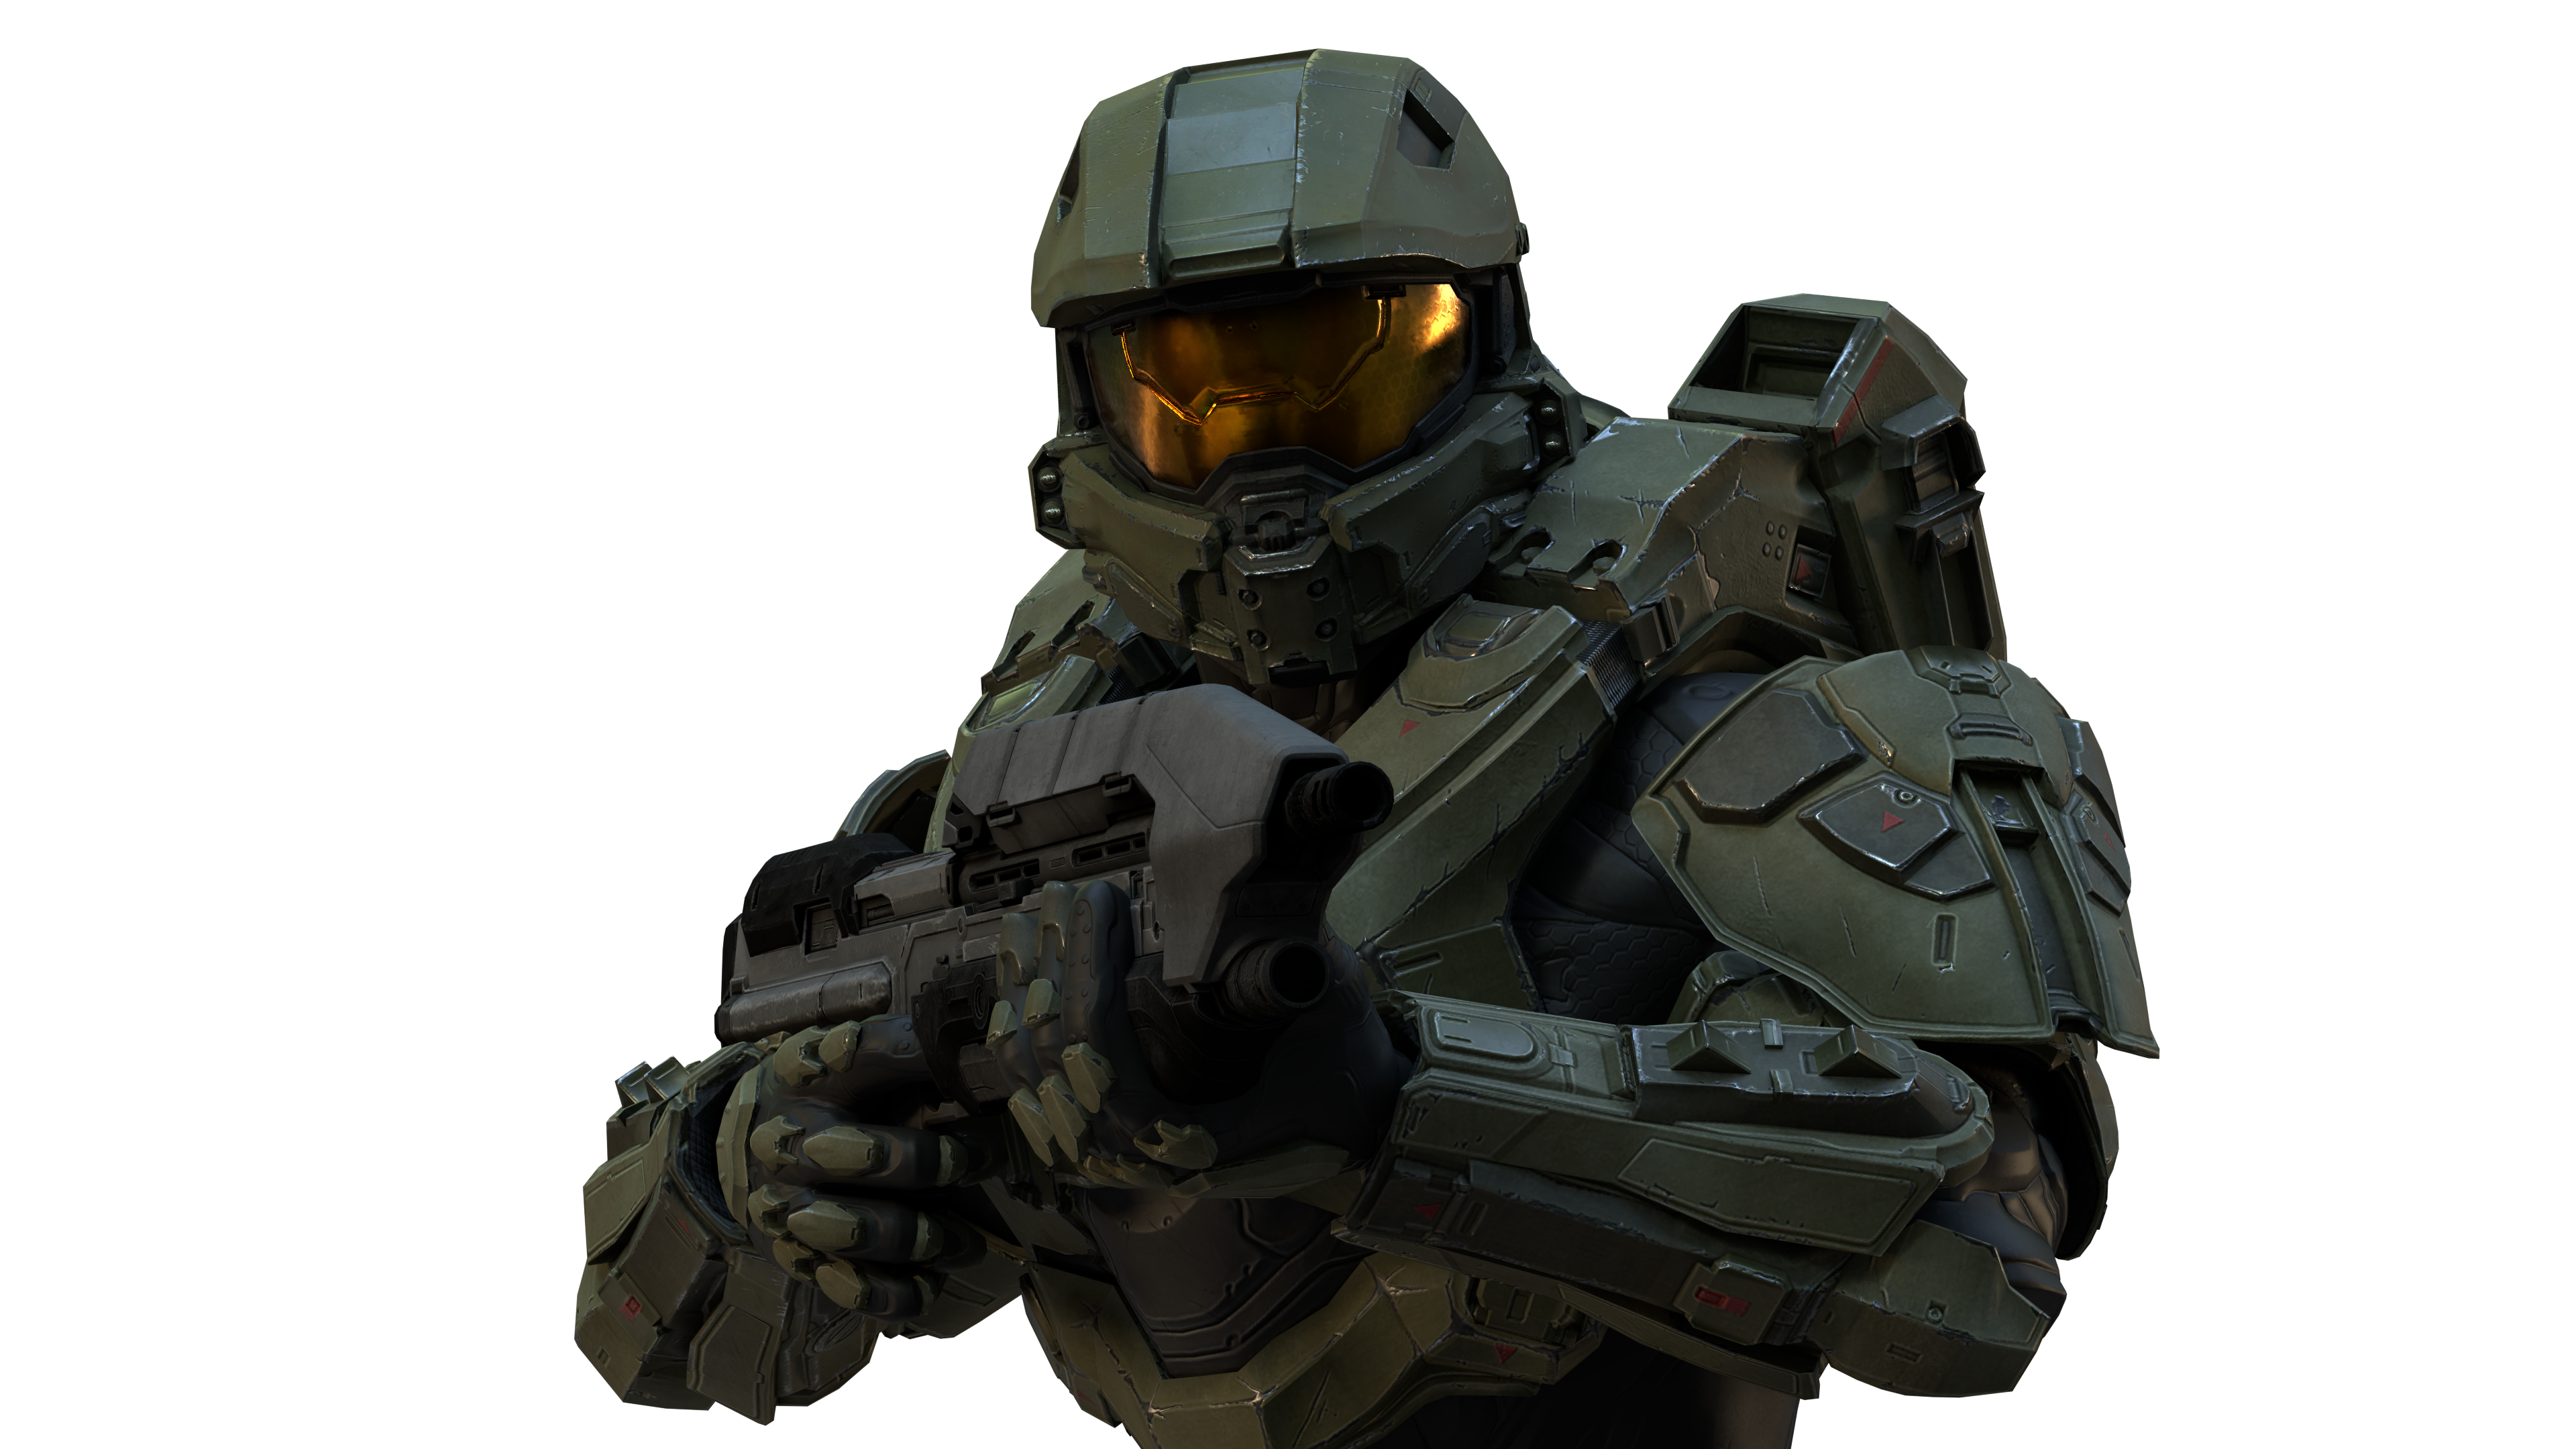 Halo Master Chief Png Picture 678989 Halo Master Chief Png